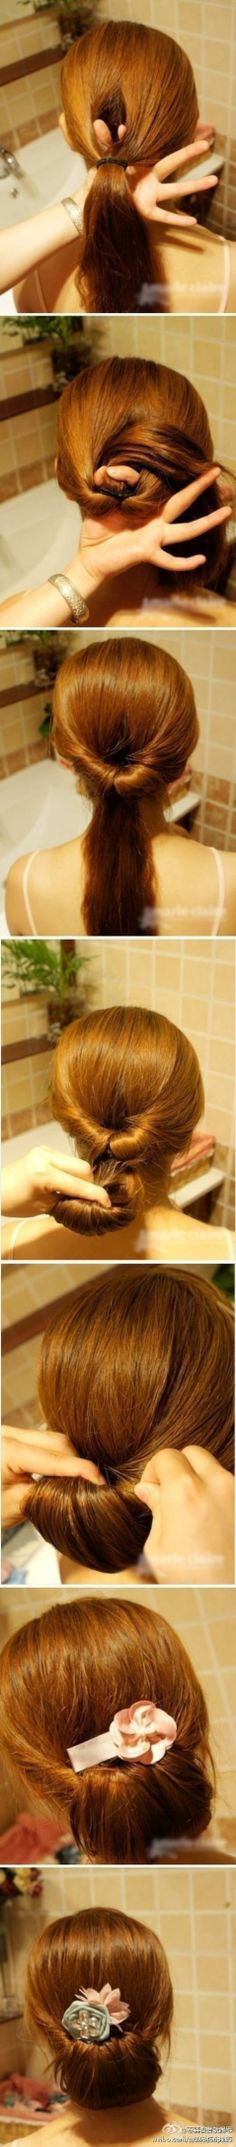 easy hair step by step - Google Search